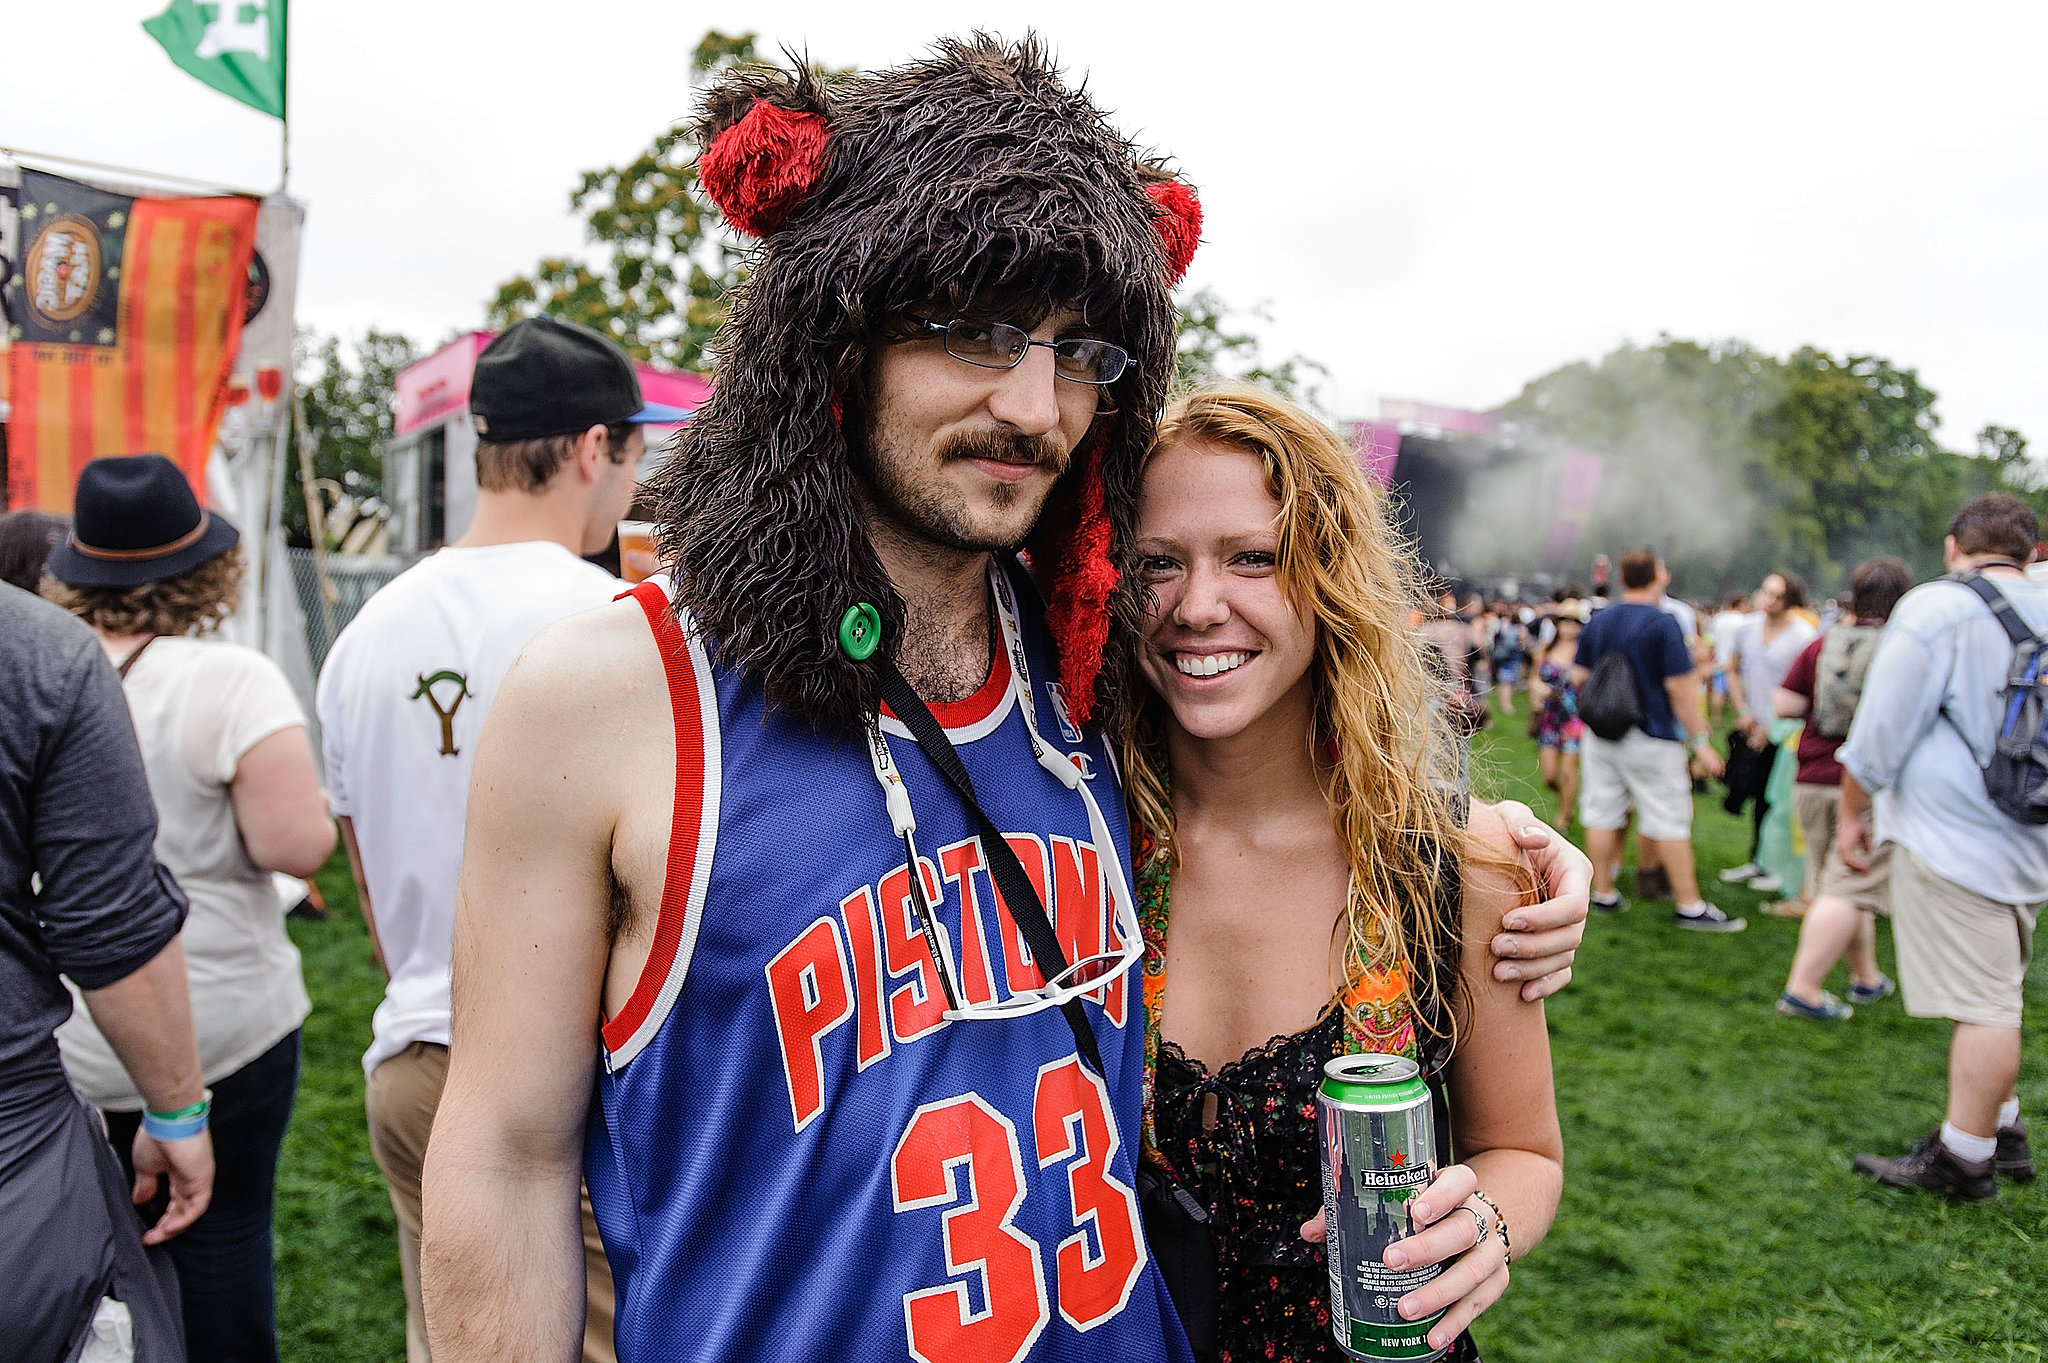 Creatively dressed festivalgoers got close at the Catalpa Festival at Randall's Island in New York City.